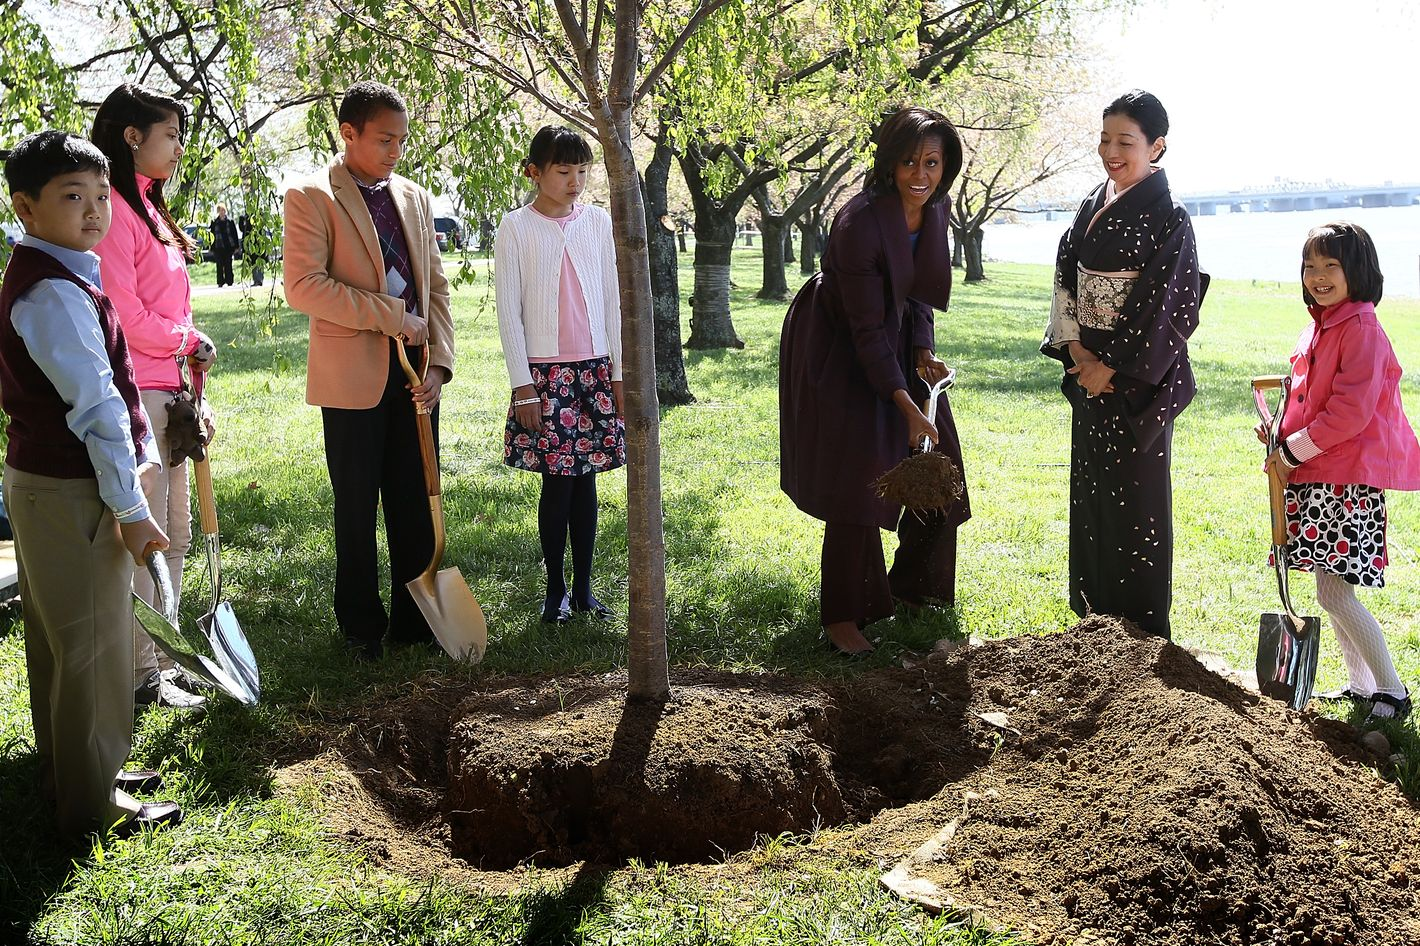 WASHINGTON, DC - MARCH 27:  U.S. first lady Michelle Obama (3rd R) takes part in a 1912 Cherry Blossom tree planting re-enactment ceremony with Yoriko Fujisaki (2nd R) near the Tidal Basin and along the Potomac River March 27, 2012 in Washington, DC. 2012 marks the 100th anniversary since the United States received 3,000 Cherry Blossom trees as a gift from Japan symbolizing the friendship between the two countries.  (Photo by Win McNamee/Getty Images)